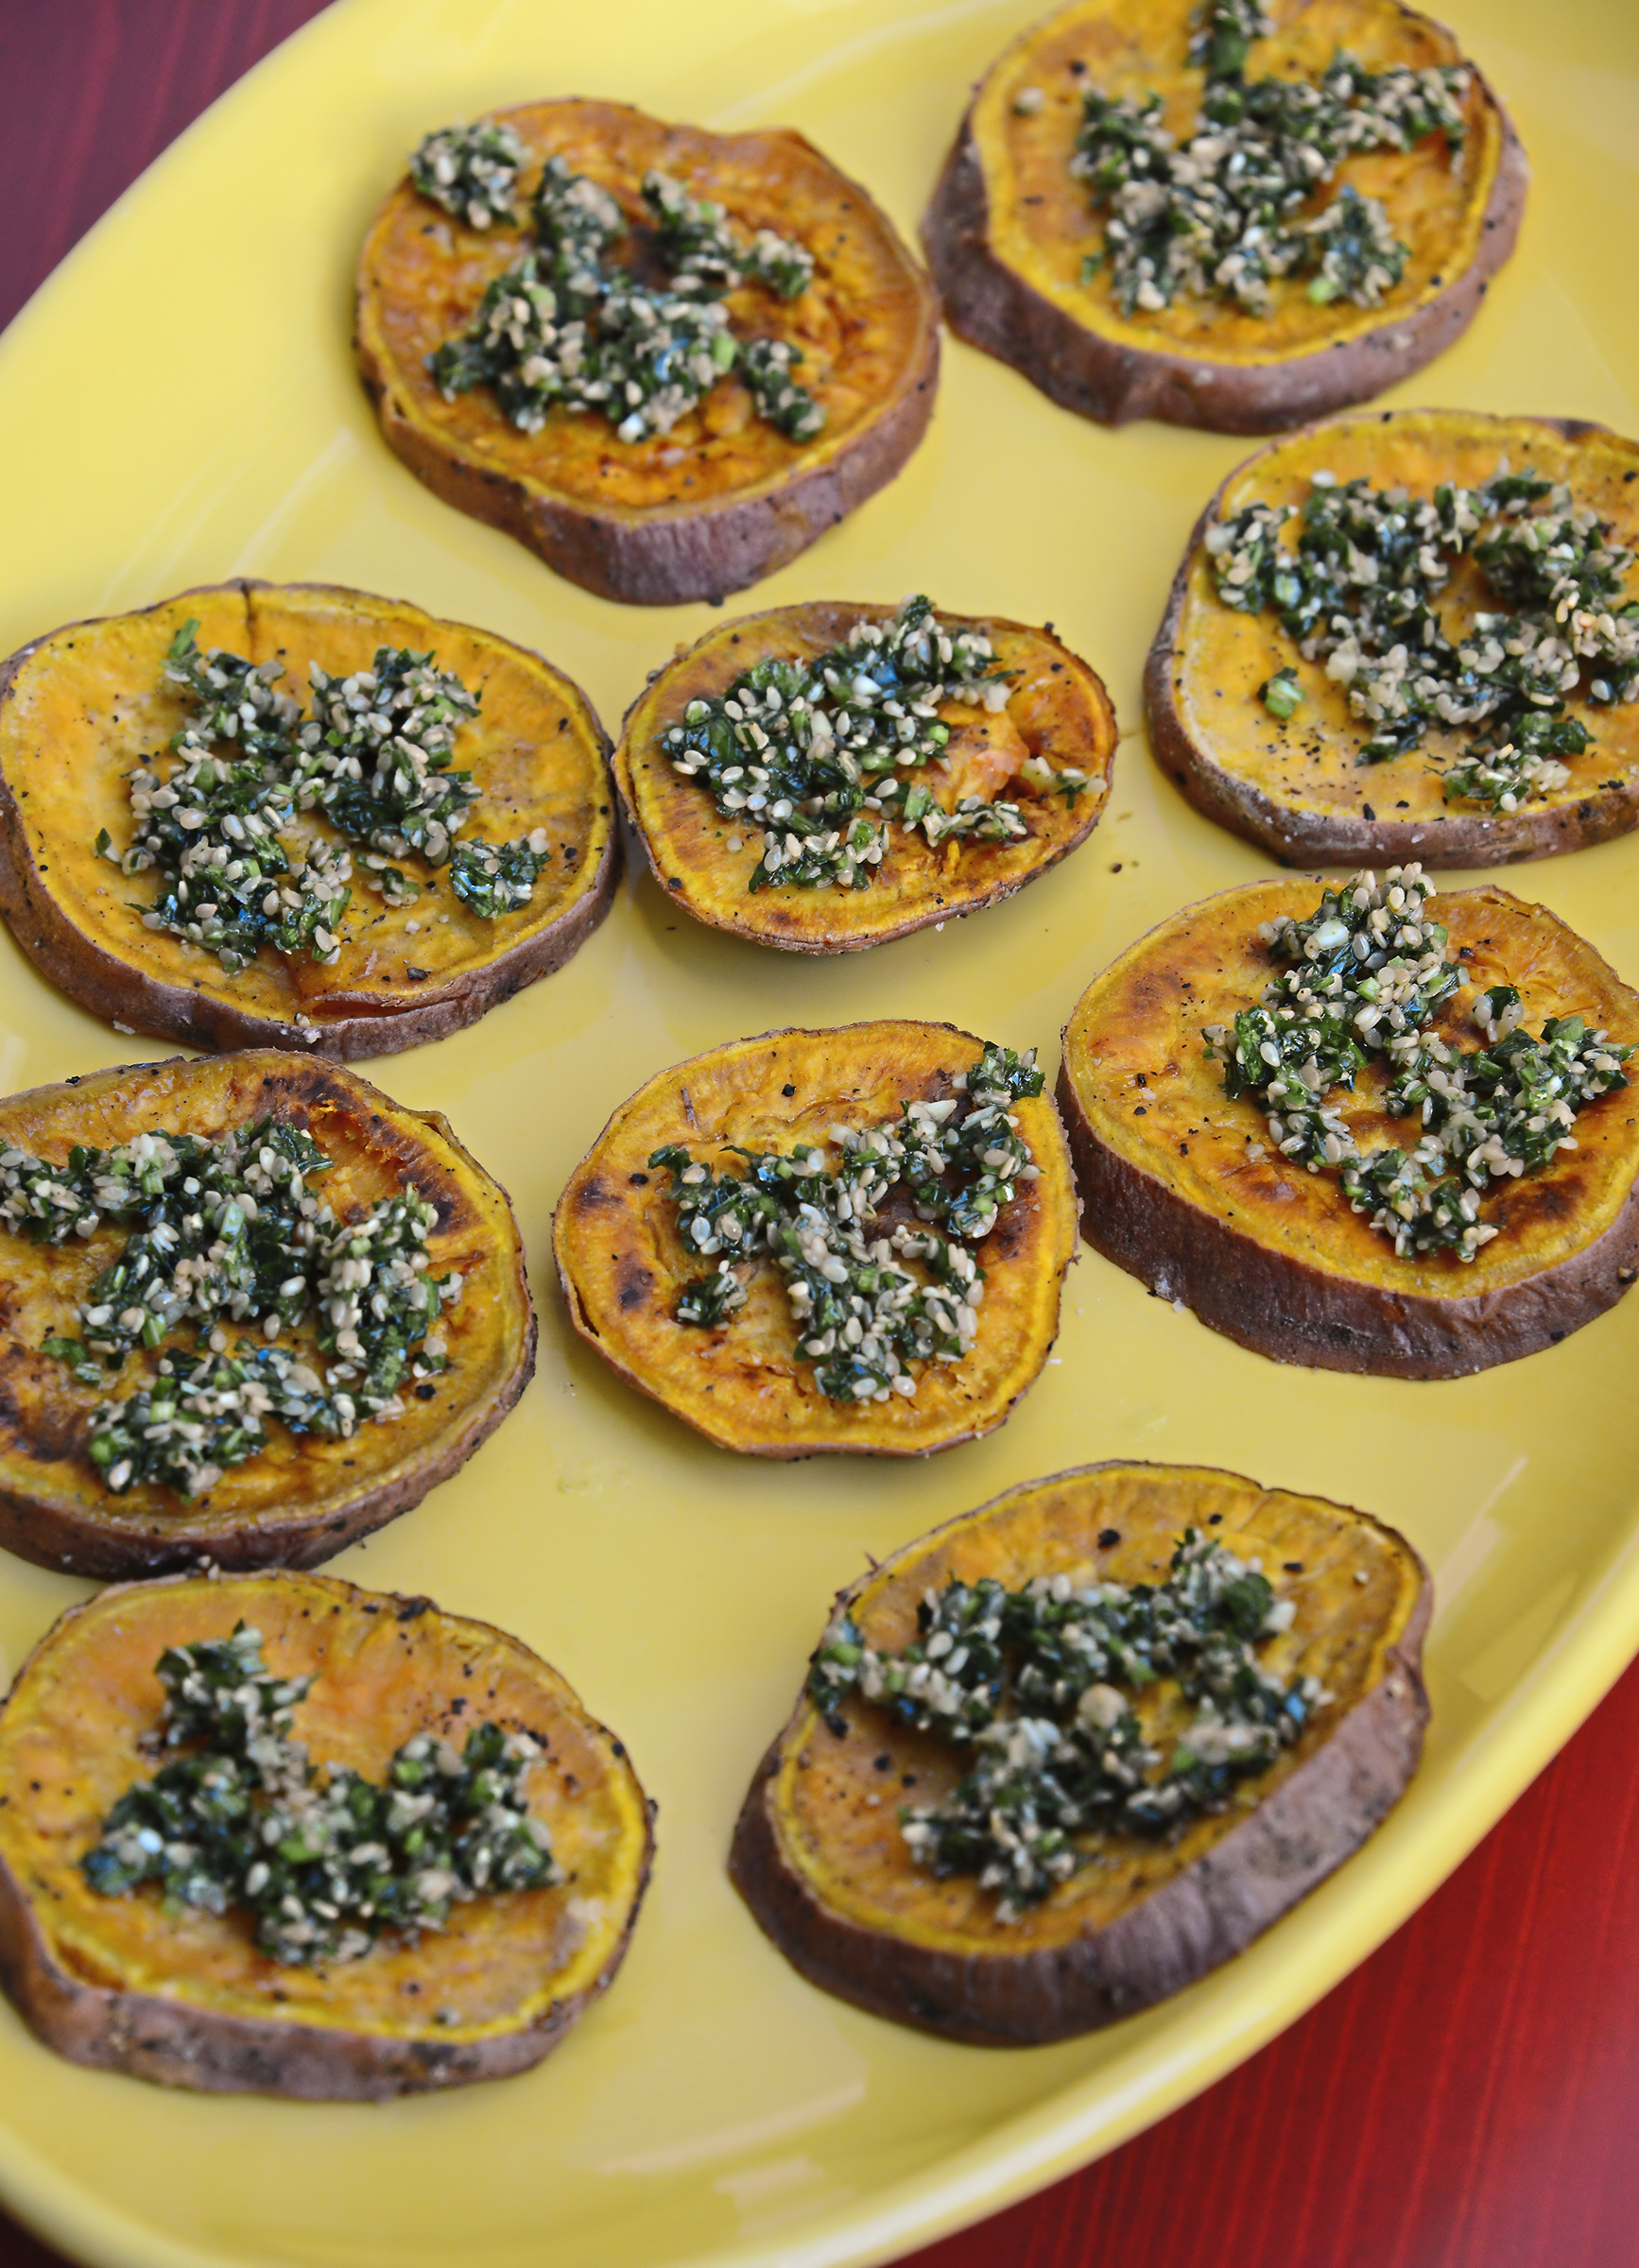 20171109lf-Thanksgiving02-1 Sweet potatoes are roasted and dressed with an herby hazelnut gremolata.